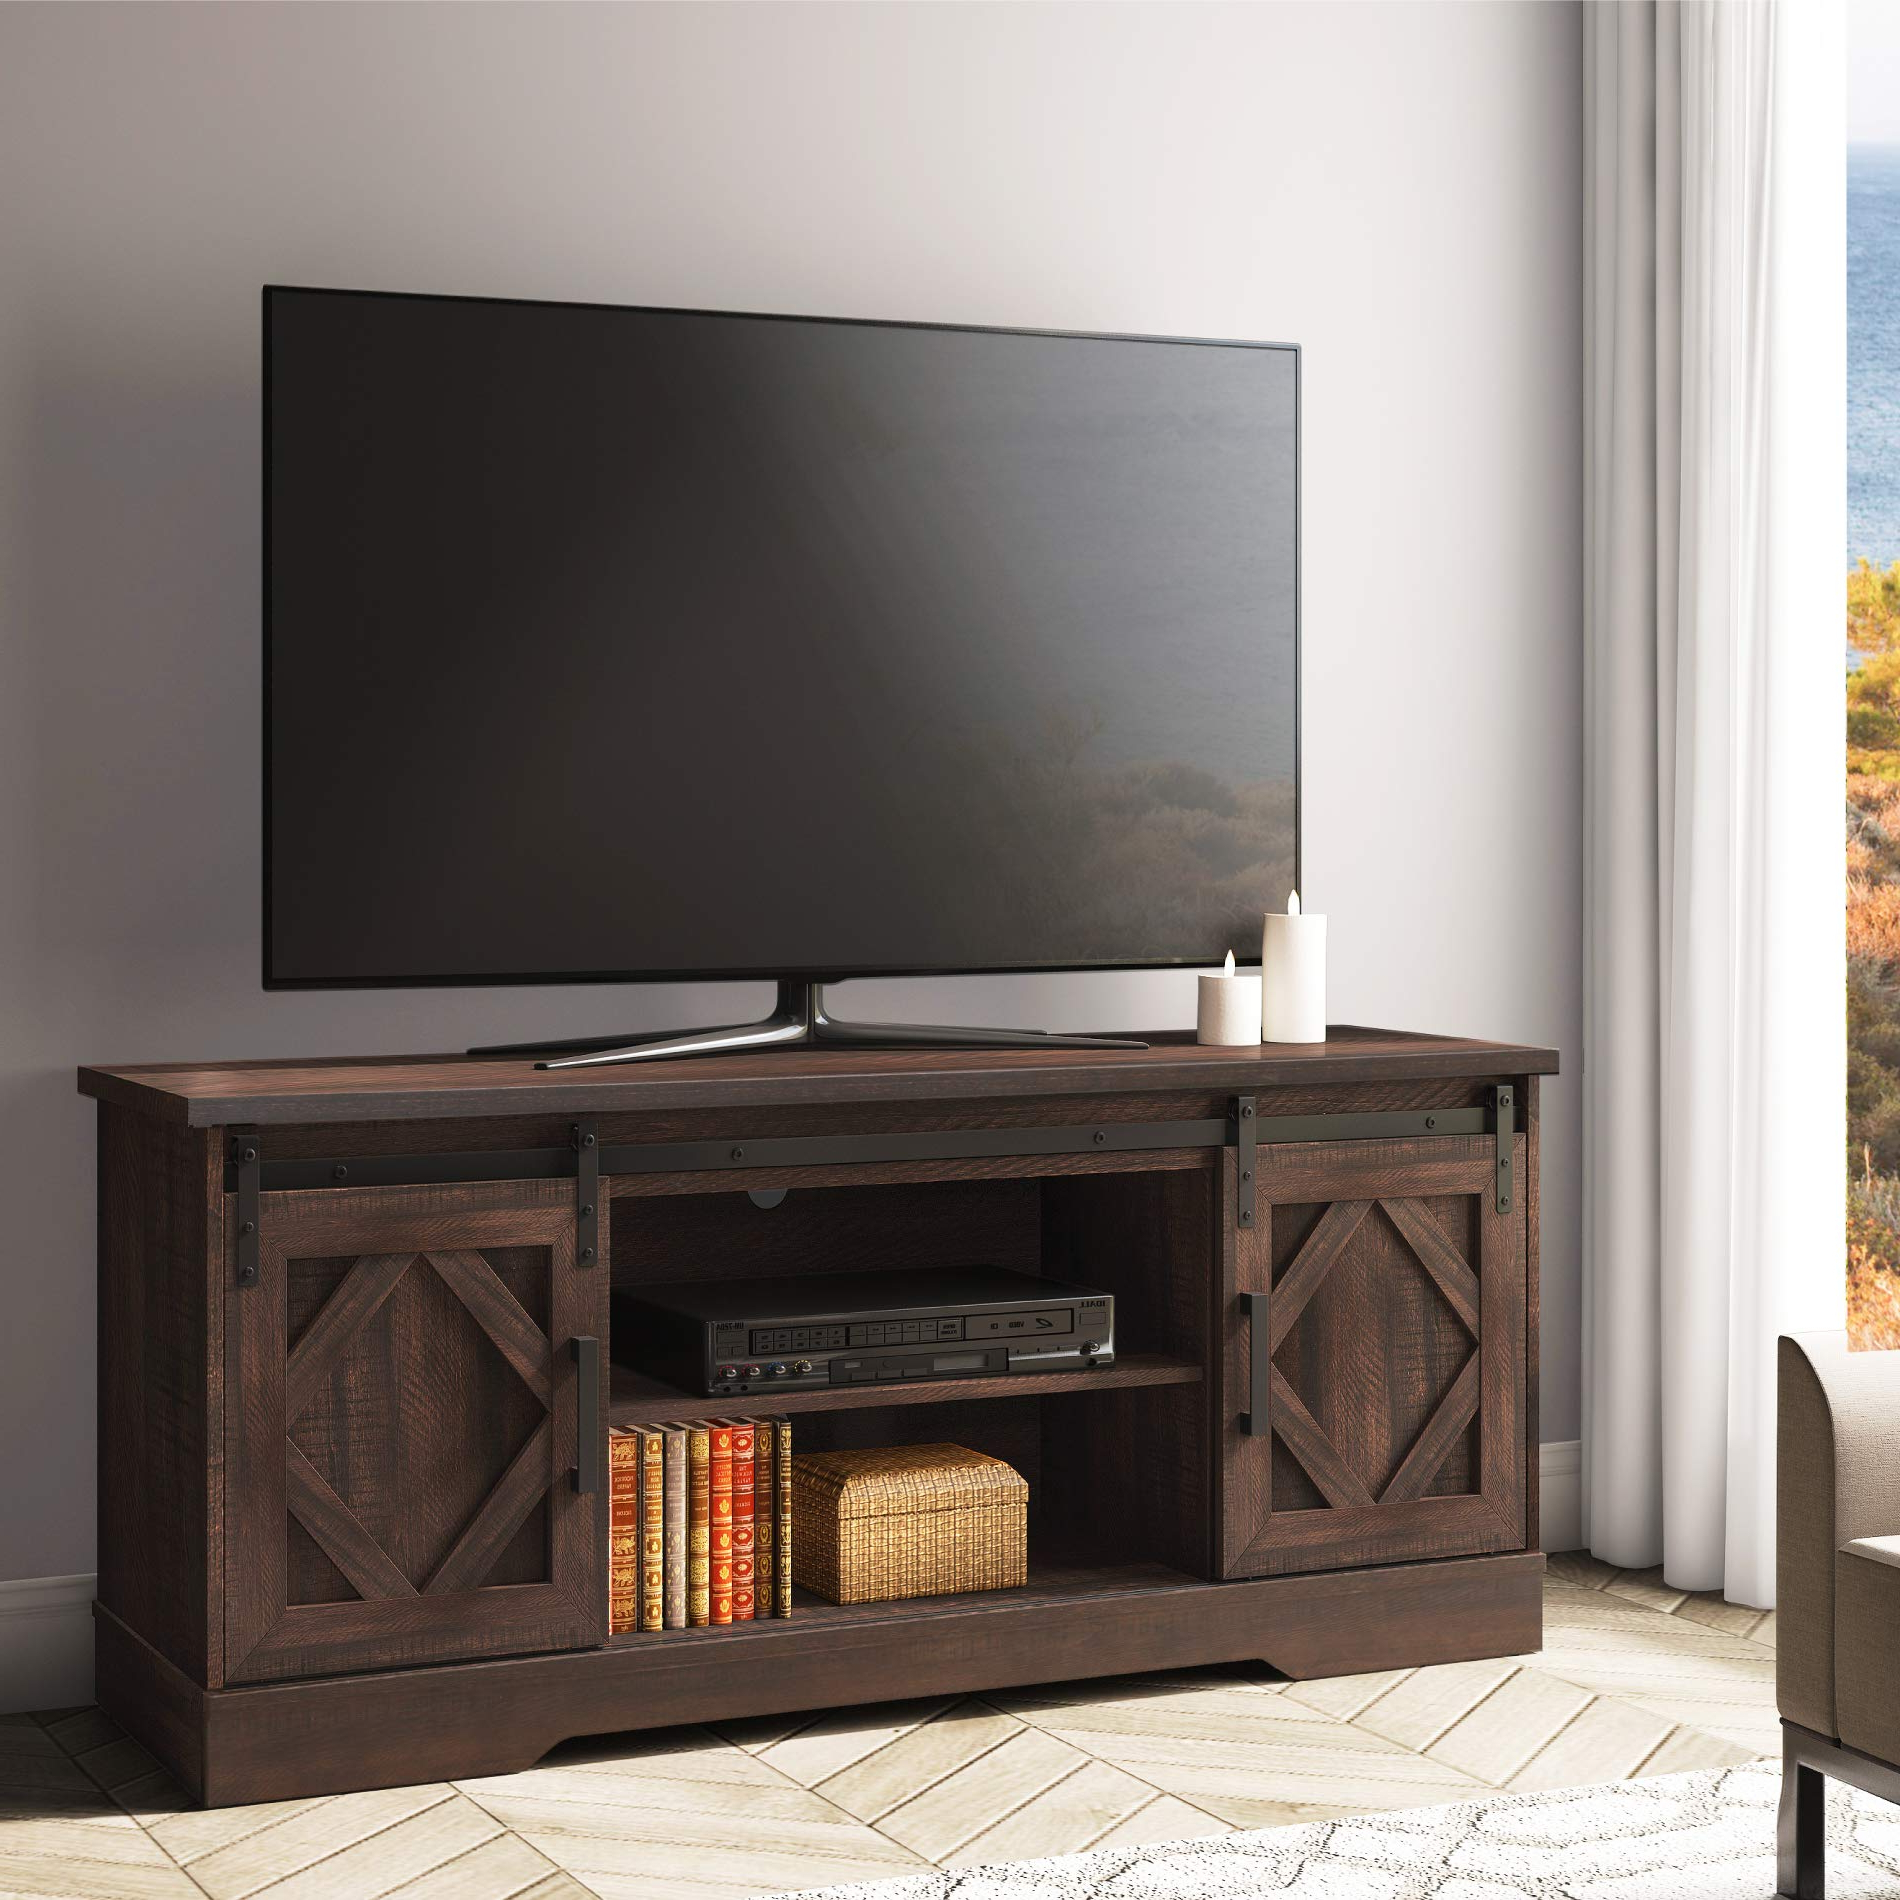 """Fitueyes Sliding Barn Door Tv Stand For 65"""" Flat Screen In Tv Stands With Sliding Barn Door Console In Rustic Oak (View 17 of 20)"""